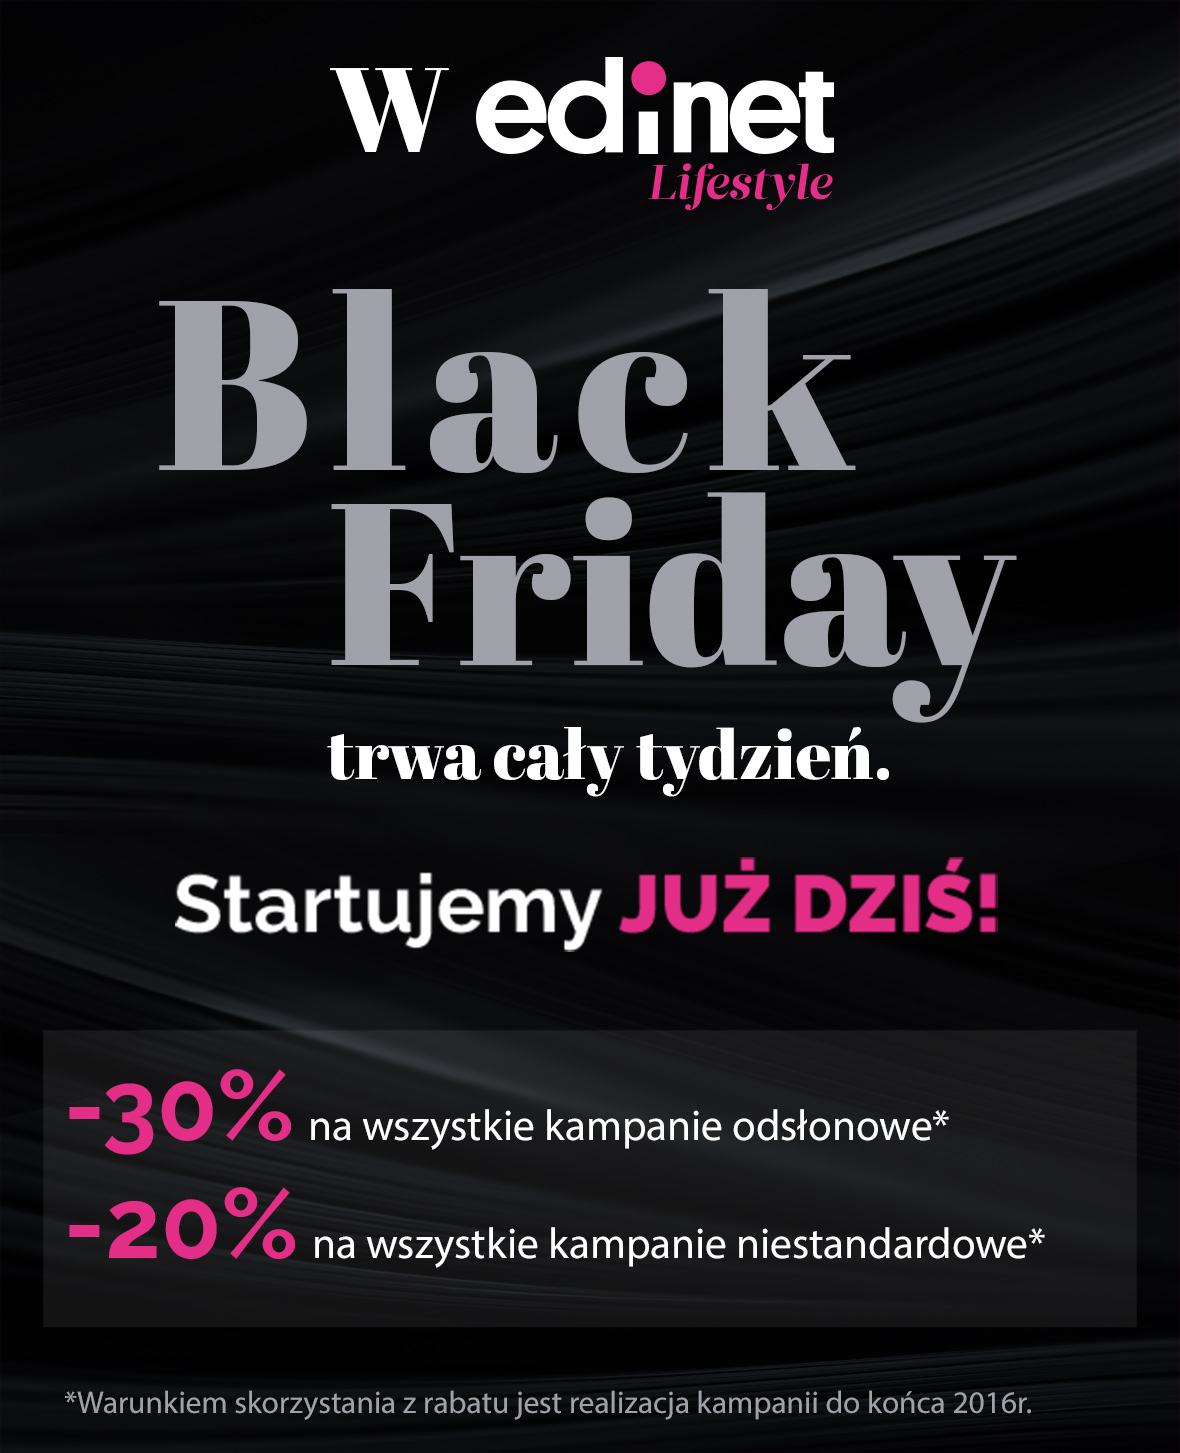 Black Friday w edinet